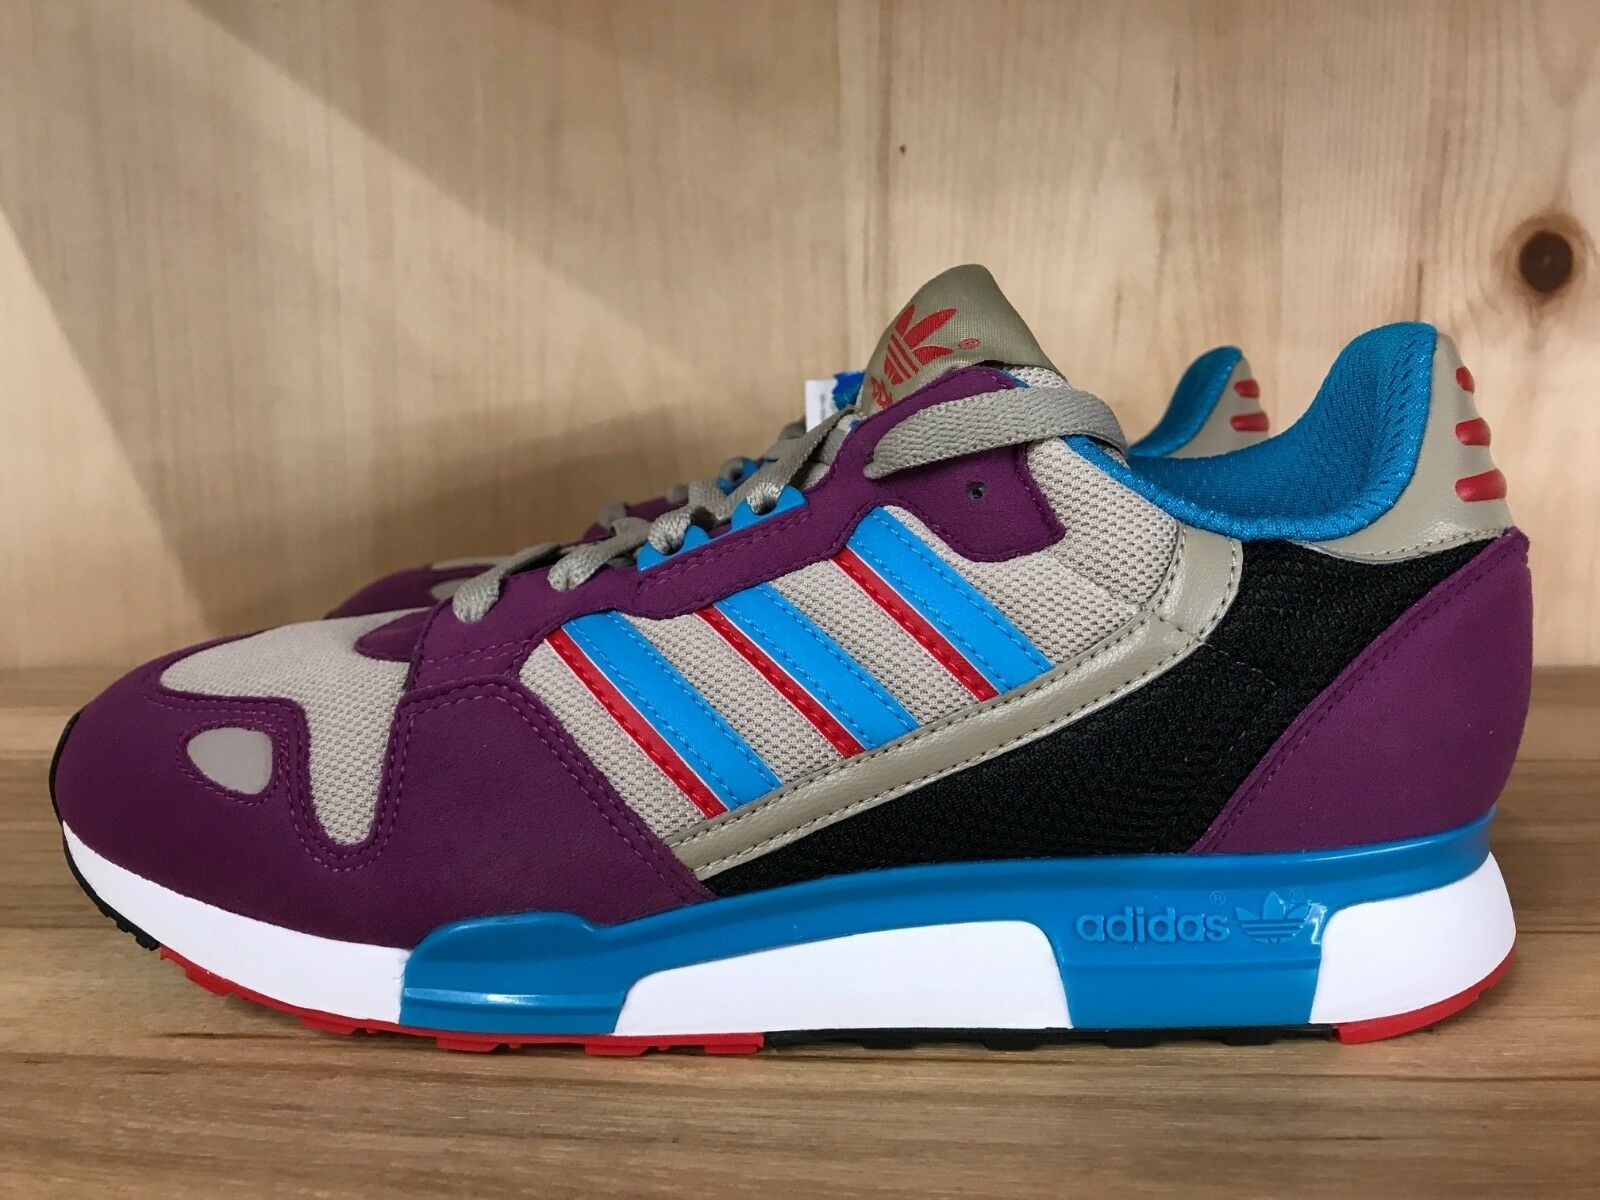 ADIDAS ORIGINALS ZX 800 VIOLET TURQUOISE RED RUNNING 912390 MEN SIZE 8  912390 RUNNING ae98d2